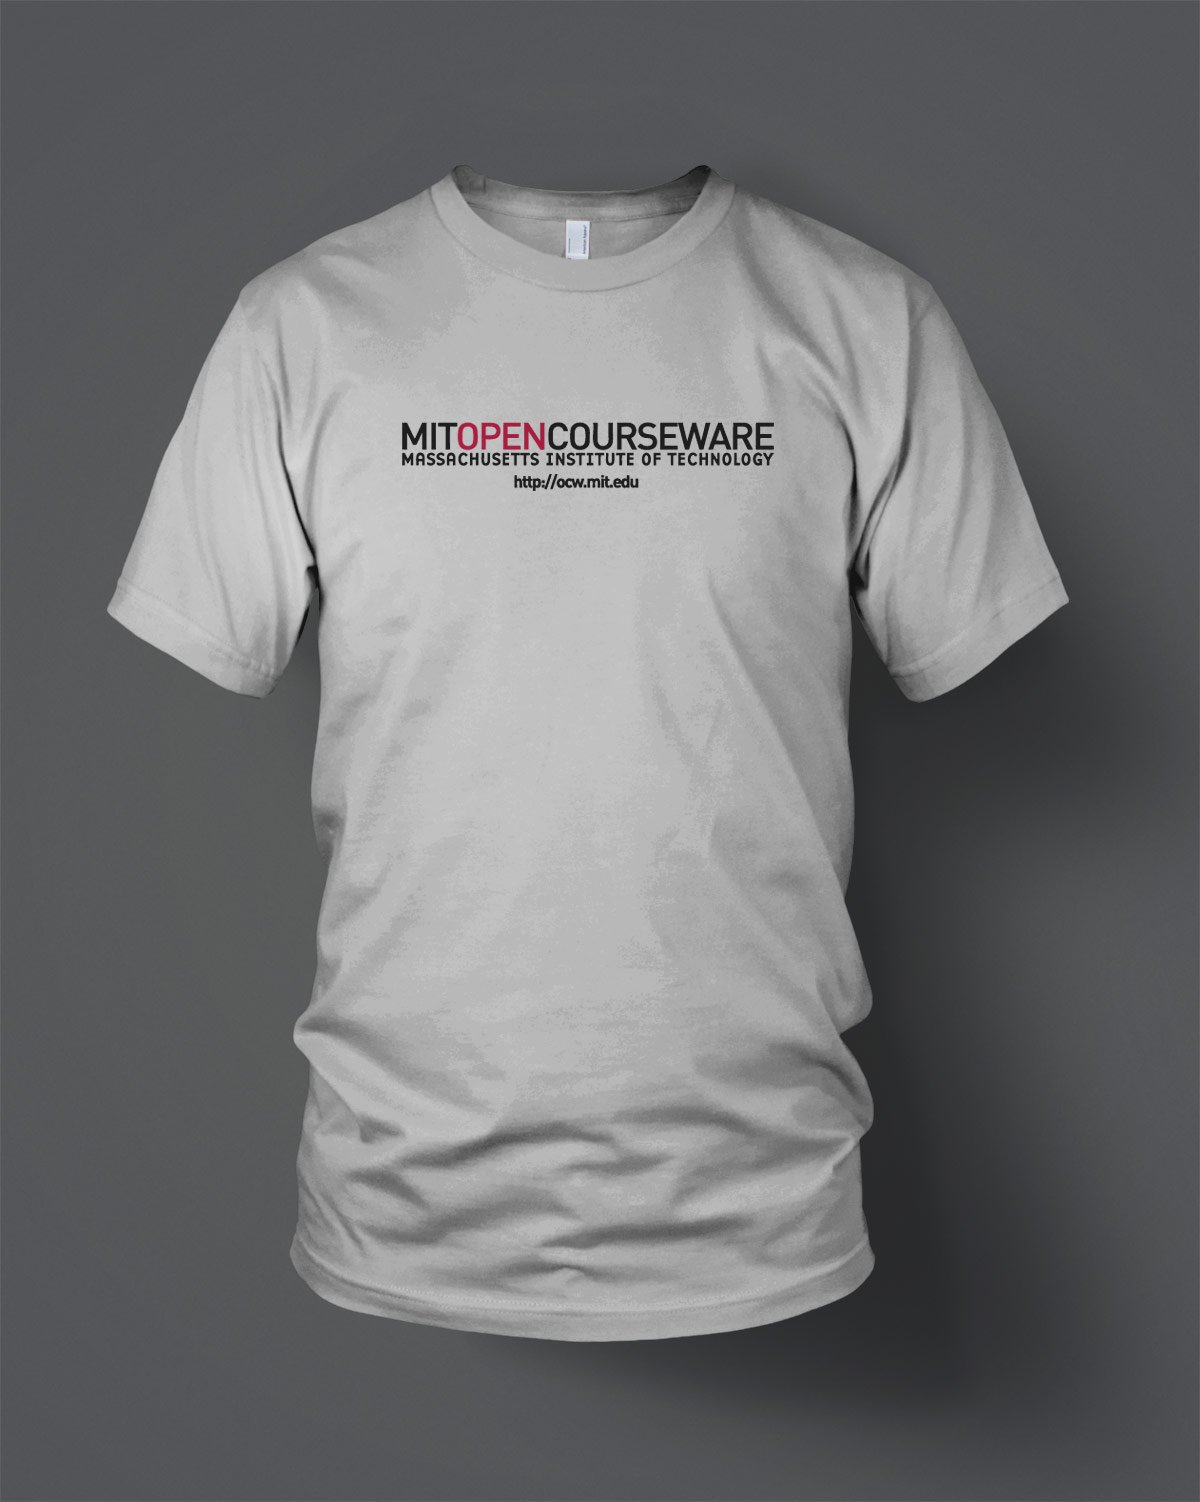 new style 90296 3beaa MIT OpenCourseWare Custom T-Shirts - Evan Webster INK